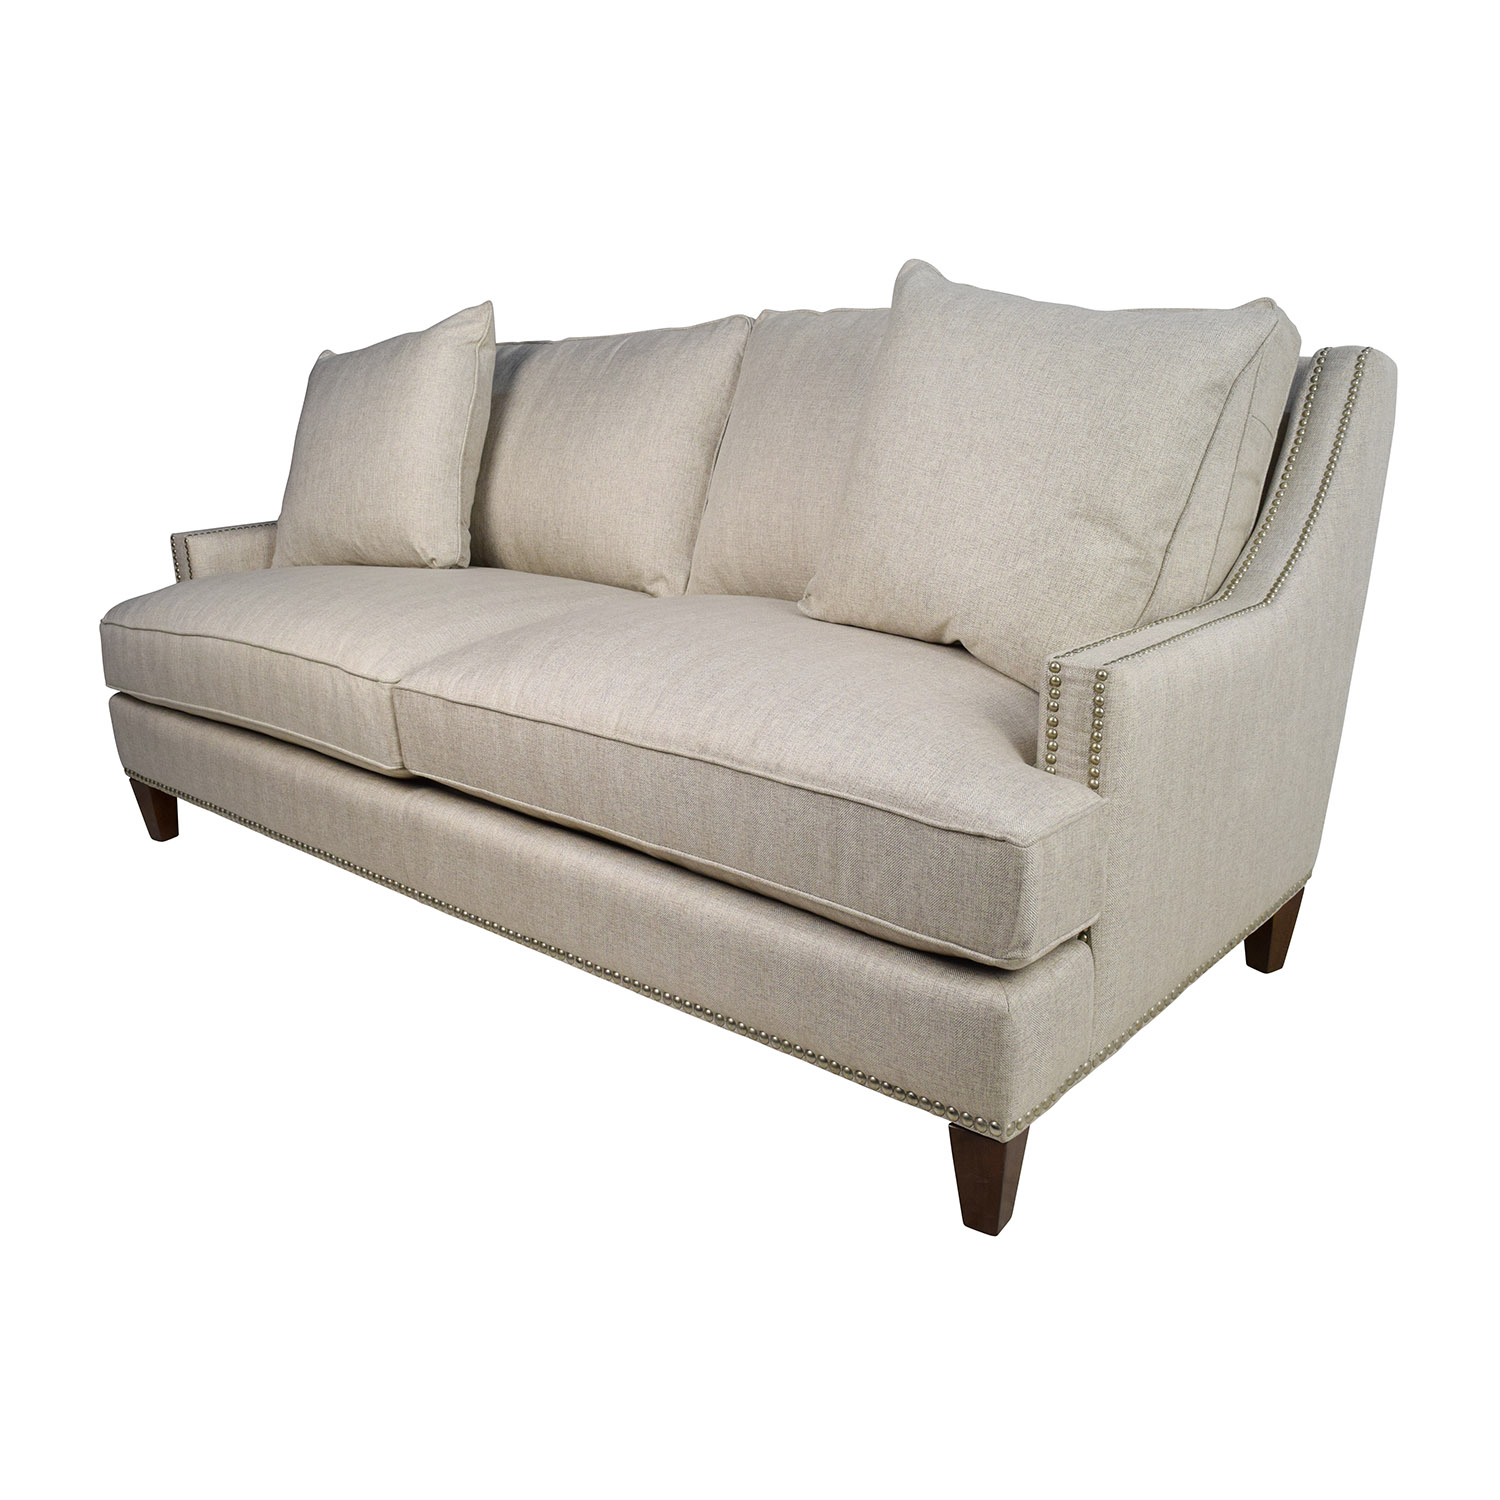 Jennifer convertible sofas sofas magnificent jennifer for Sectional sofa jennifer convertible